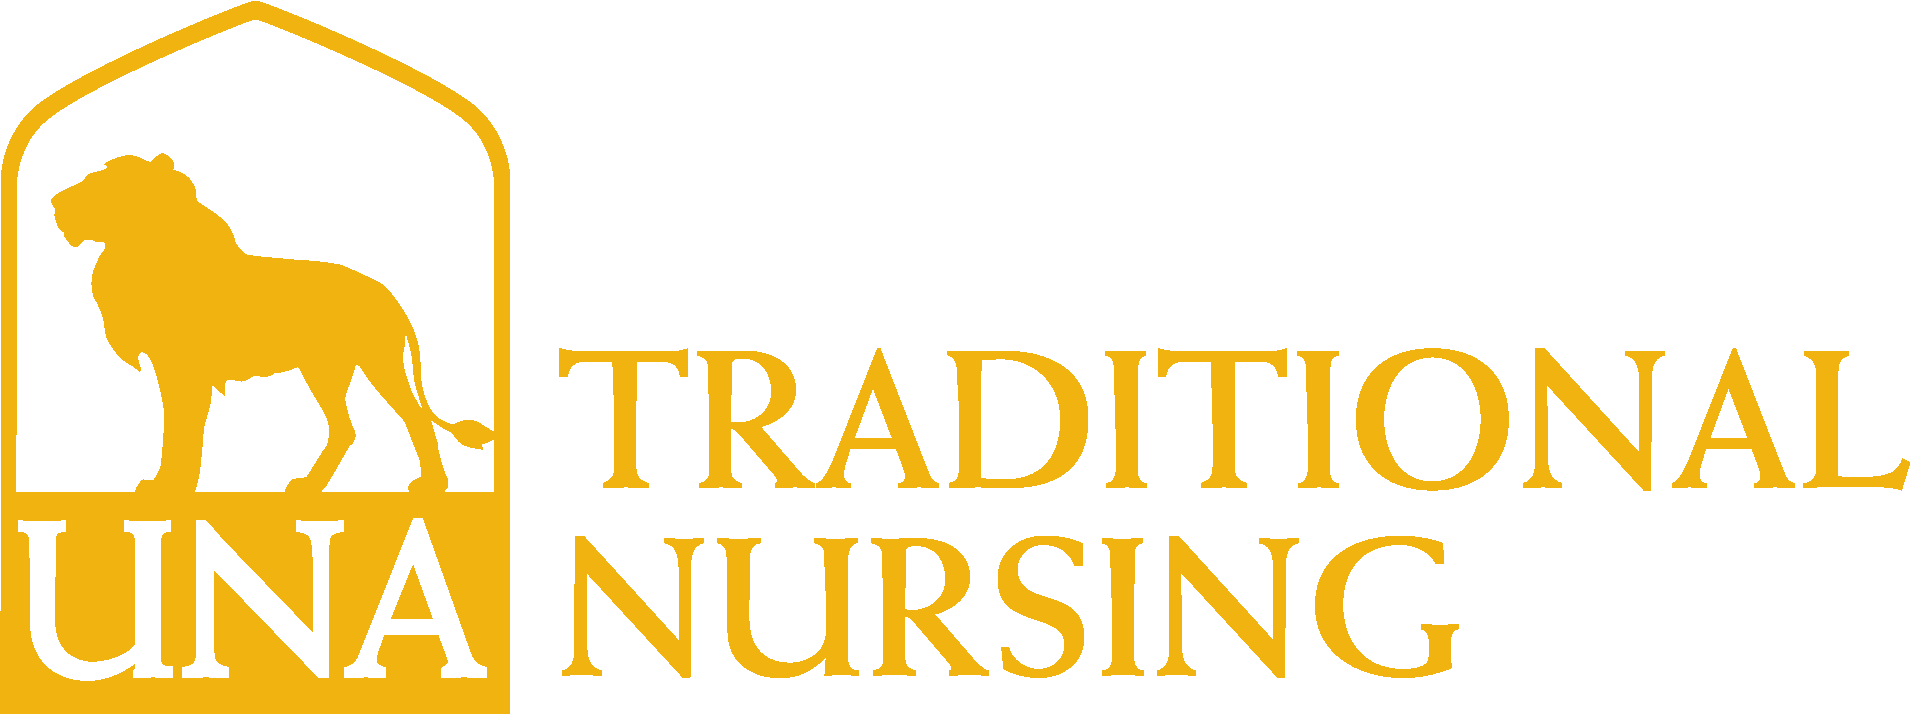 Anderson College of Nursing Traditional Logo - Gold - Version 3